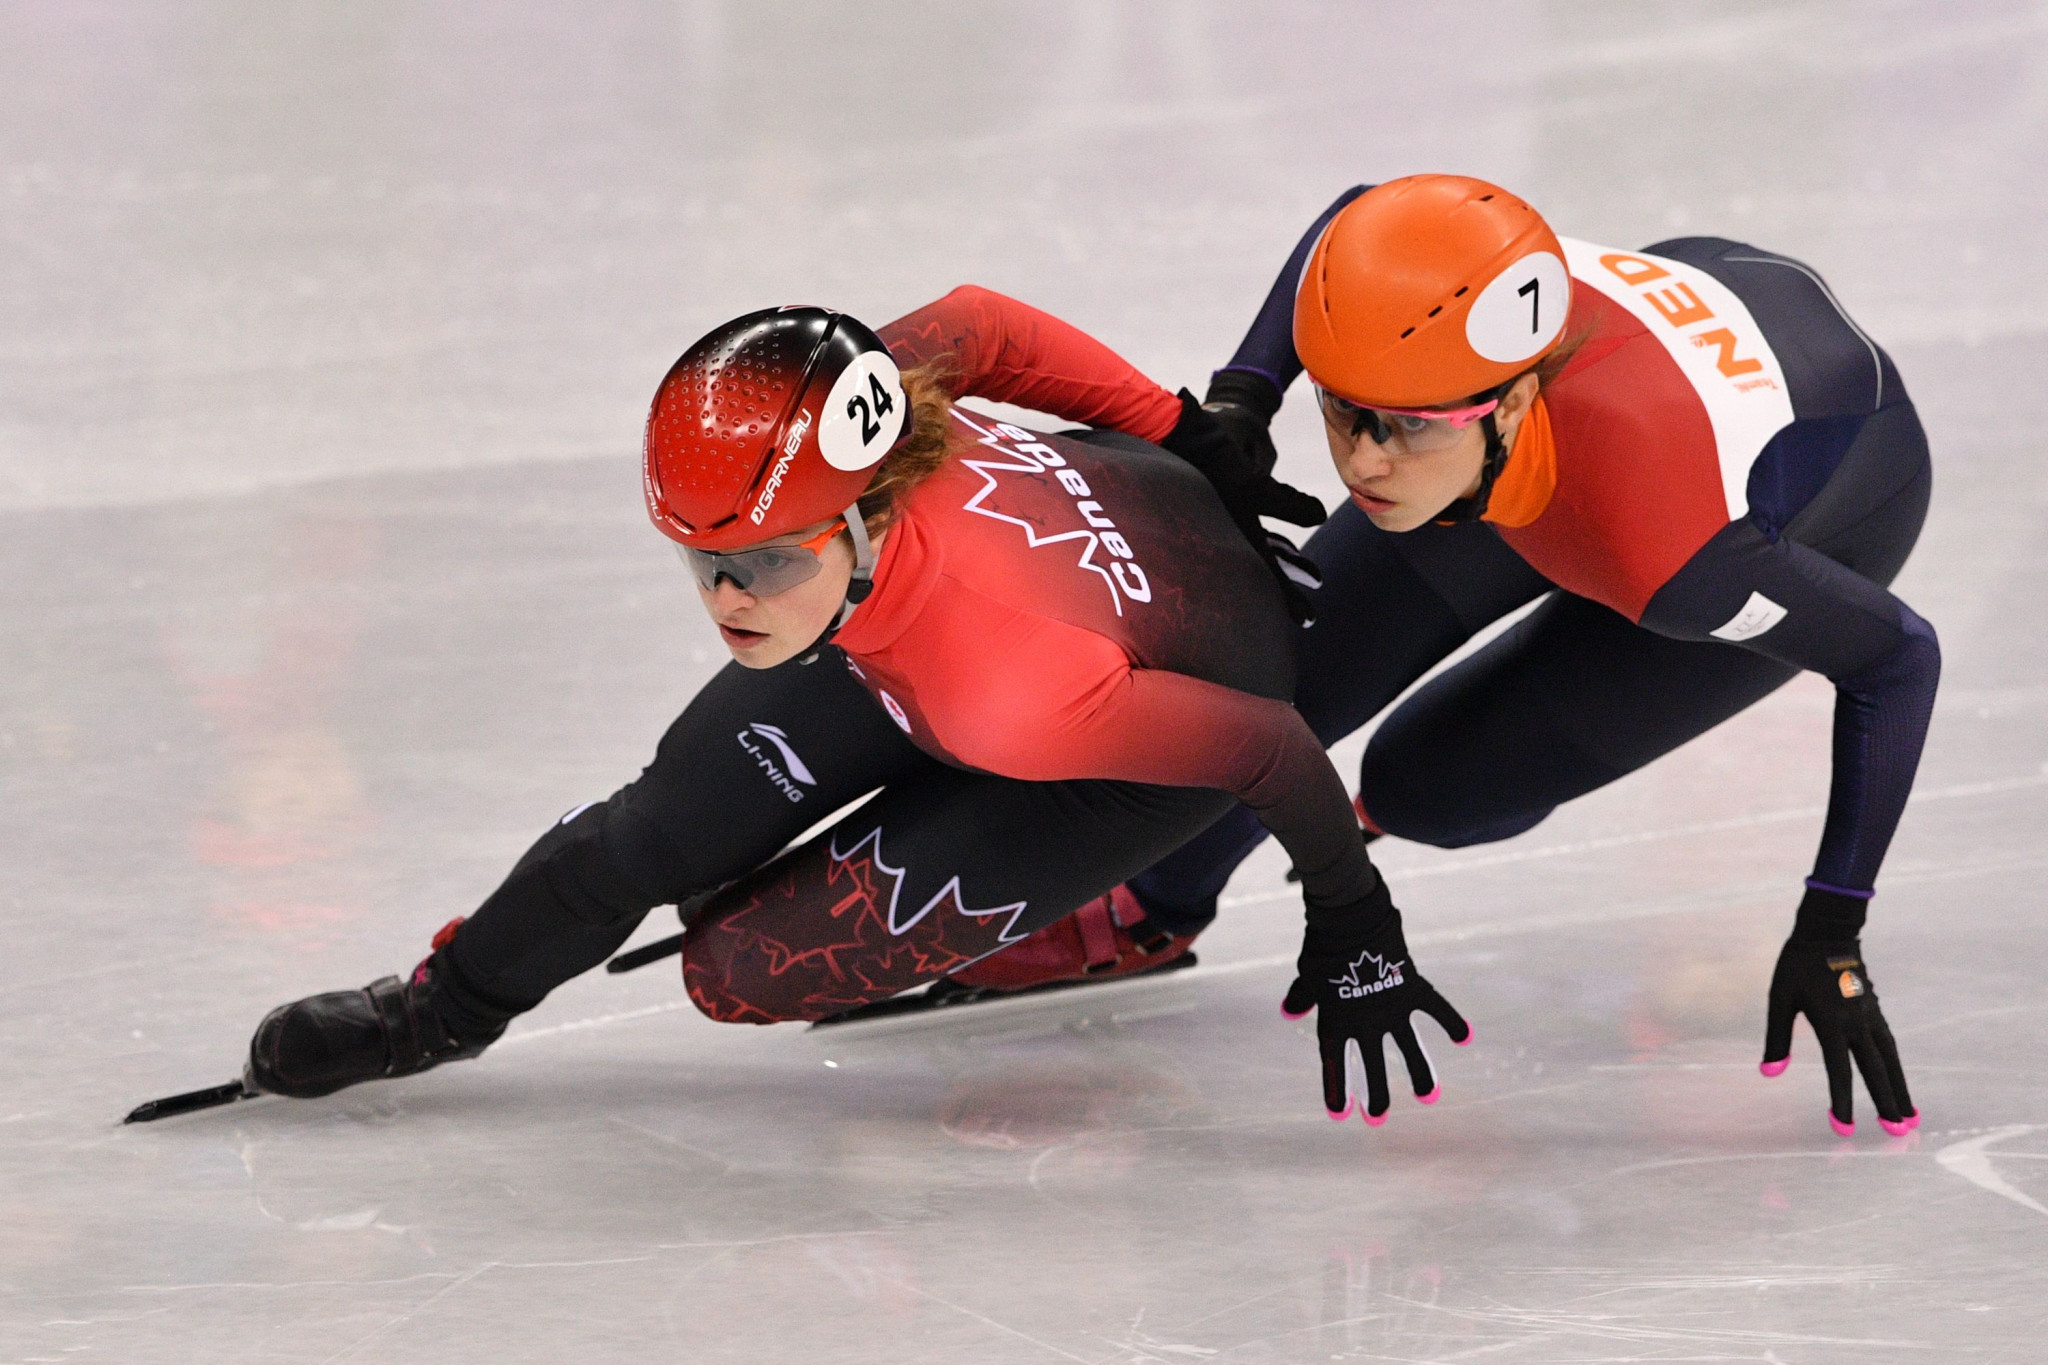 Boutin and Girard start well on home ice at World Short Track Speed Skating Championships